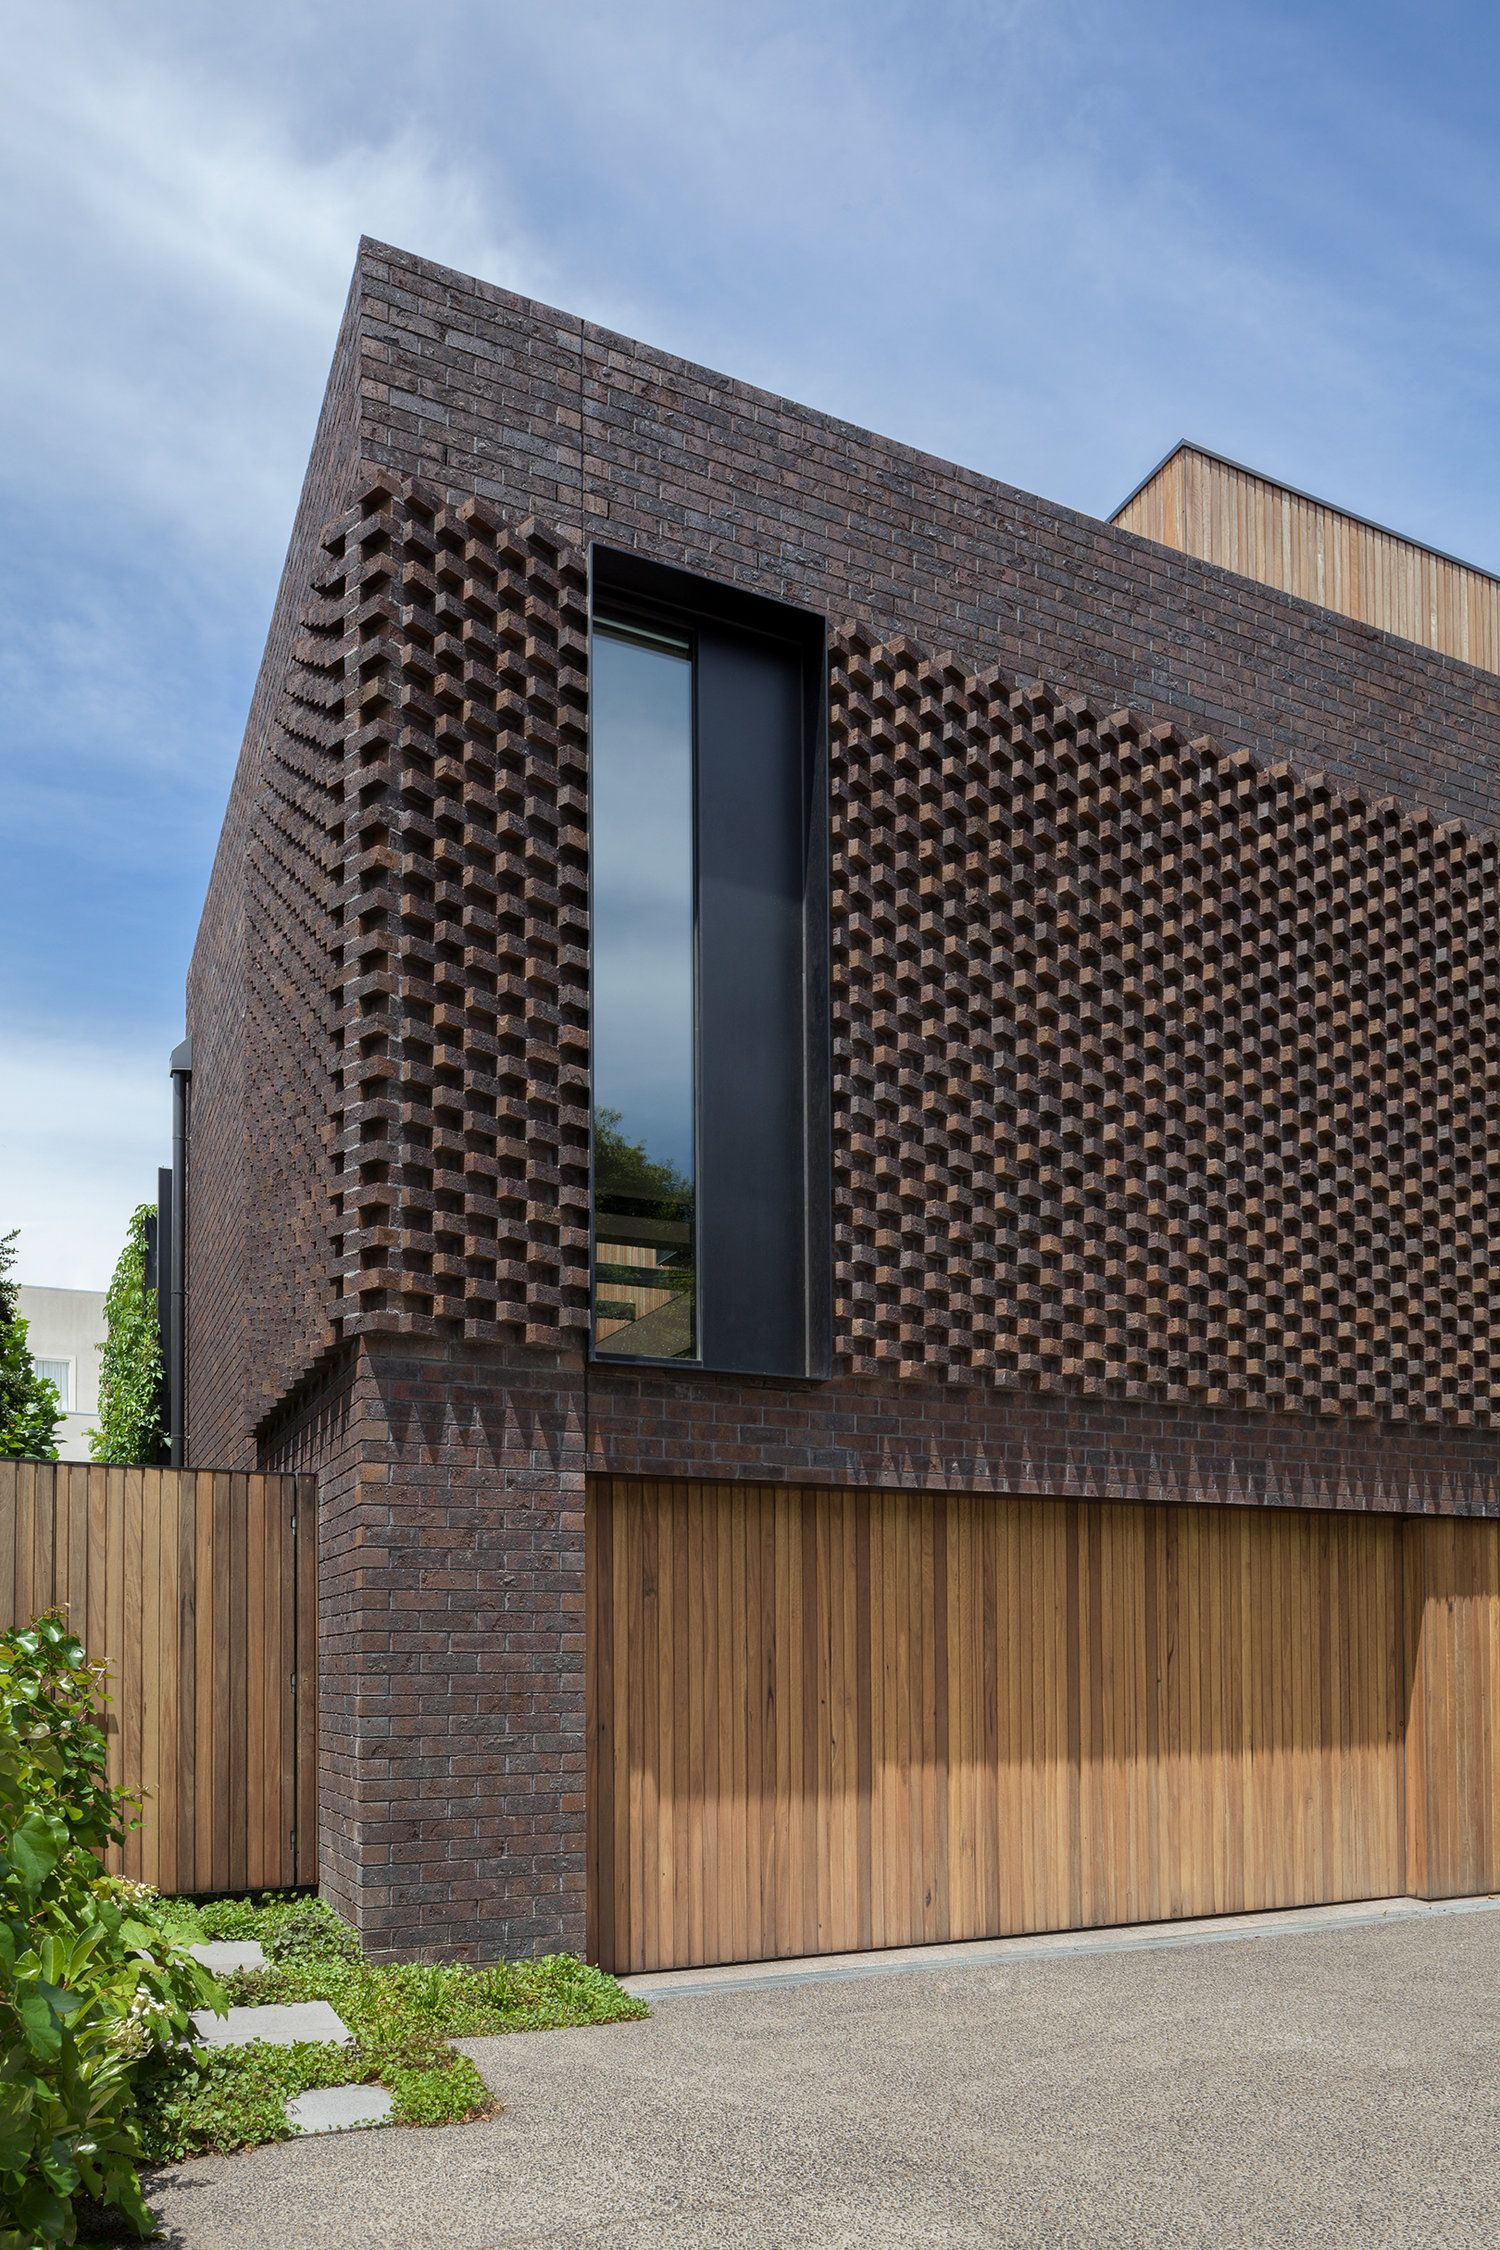 Pin By Gerri Brown On Because I Like Interiors And Exteriors In 2020 Facade Architecture Facade House Brick Facade